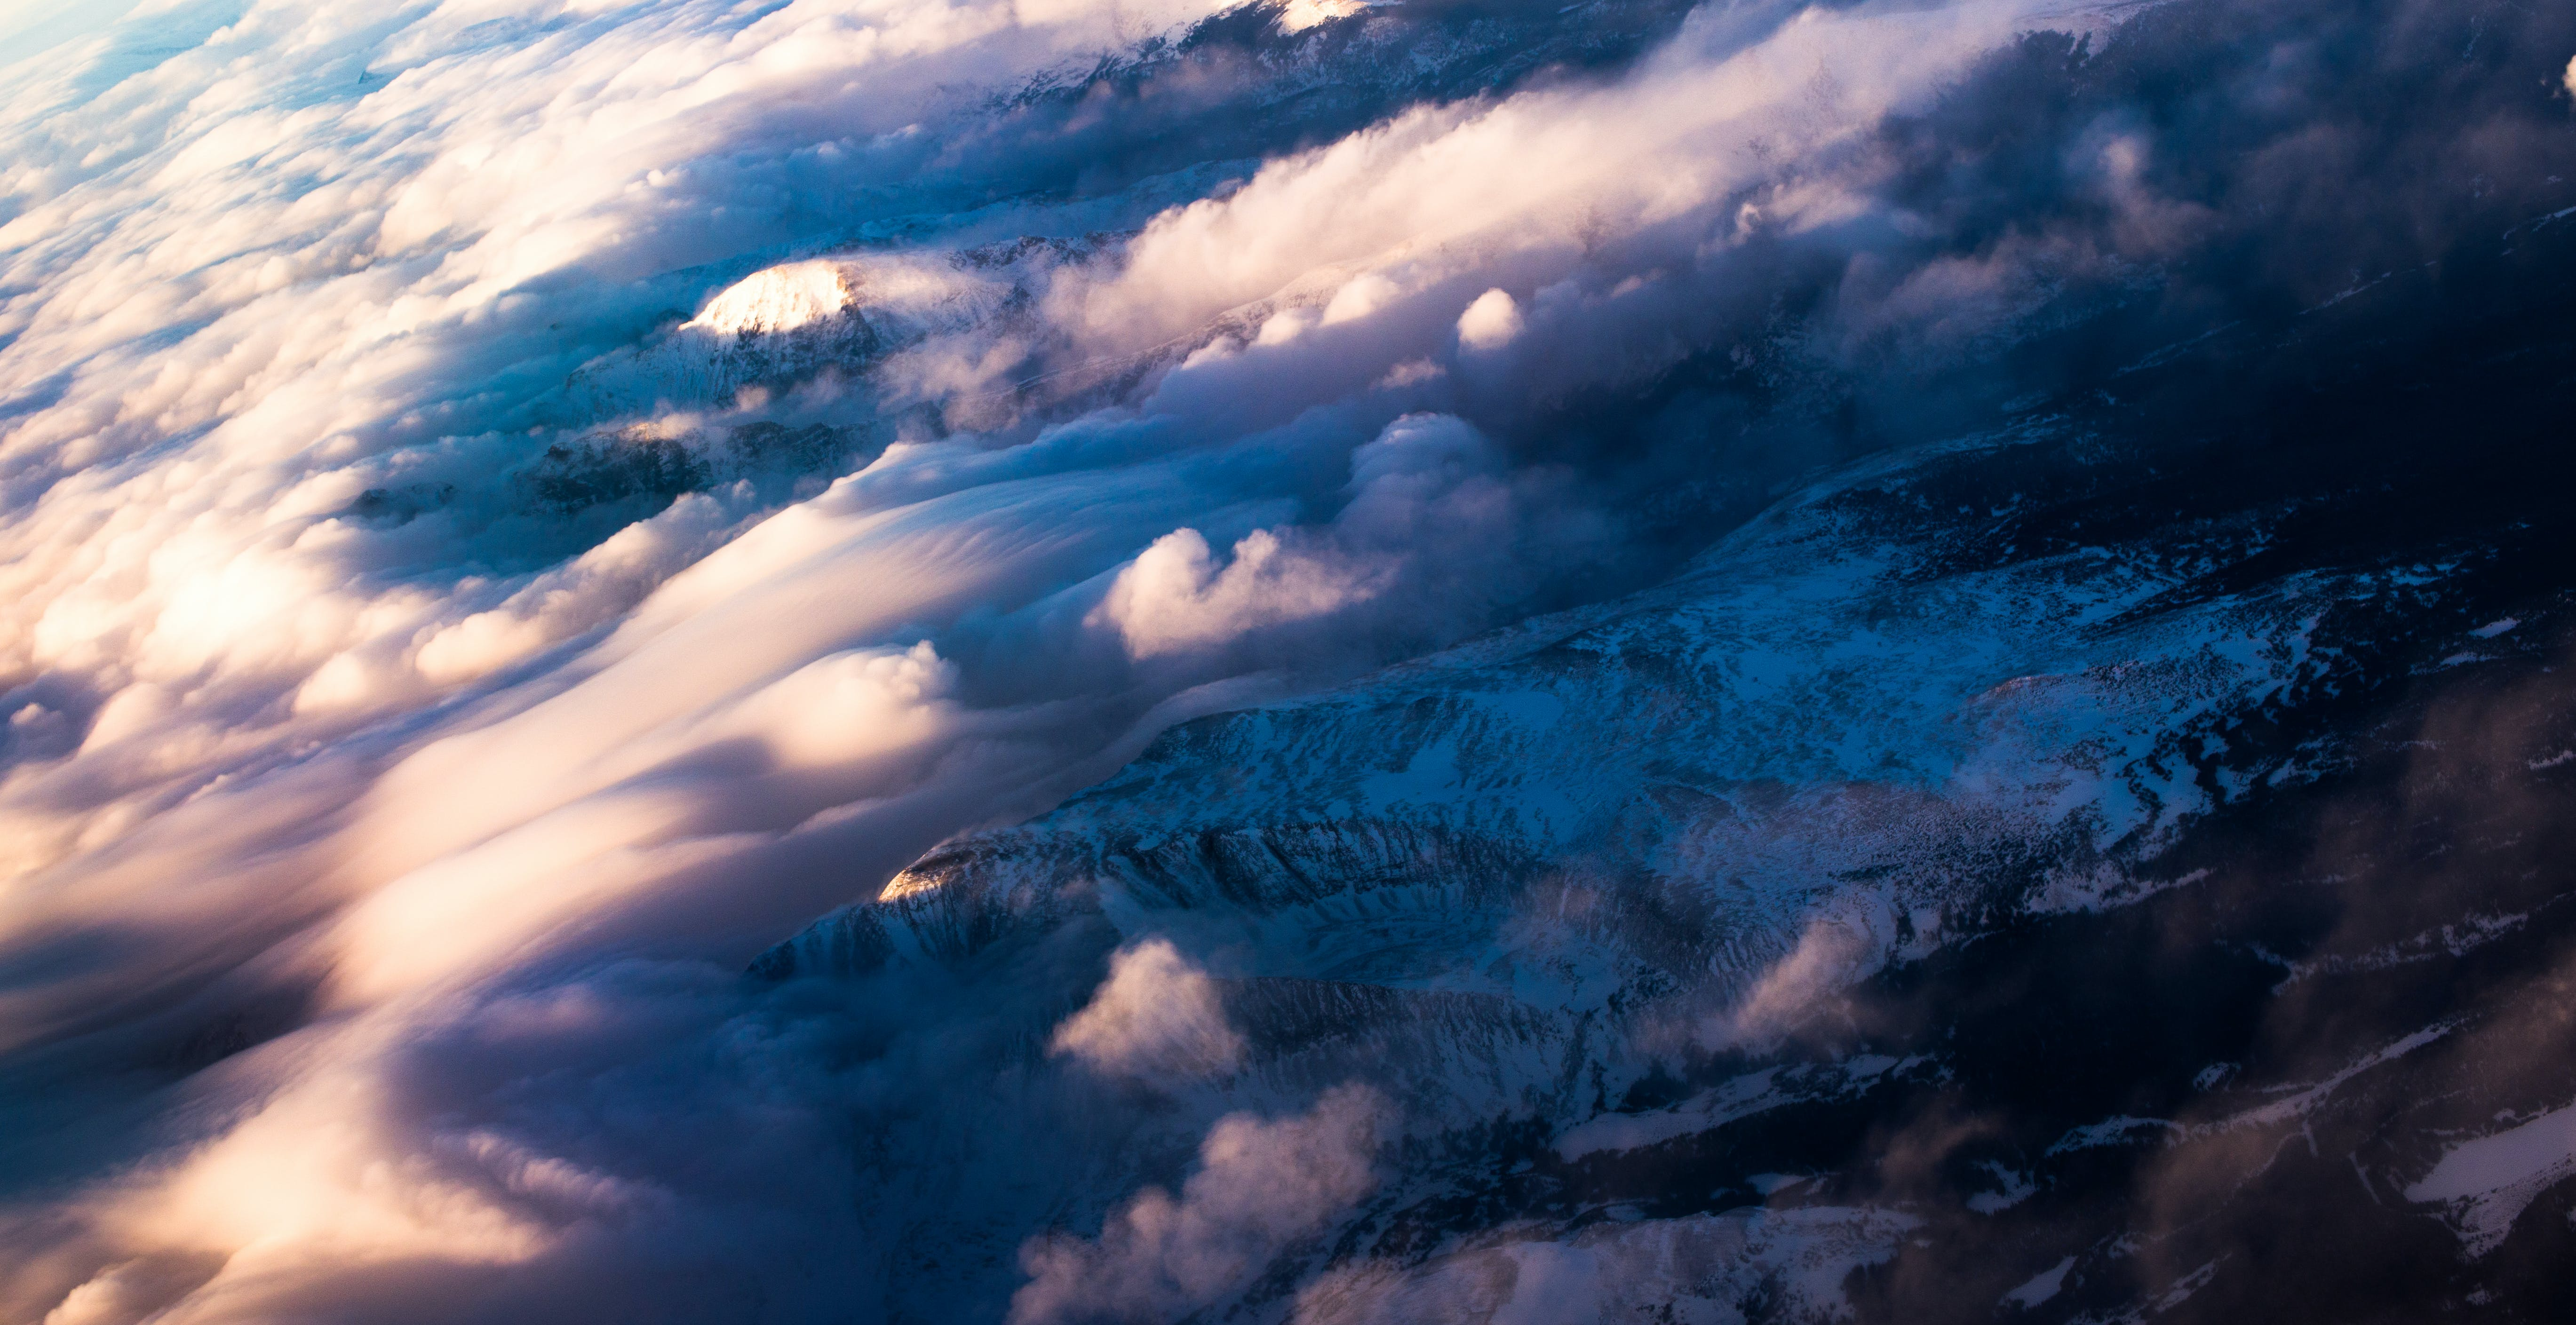 Aerial Photography of White Clouds over Mountain